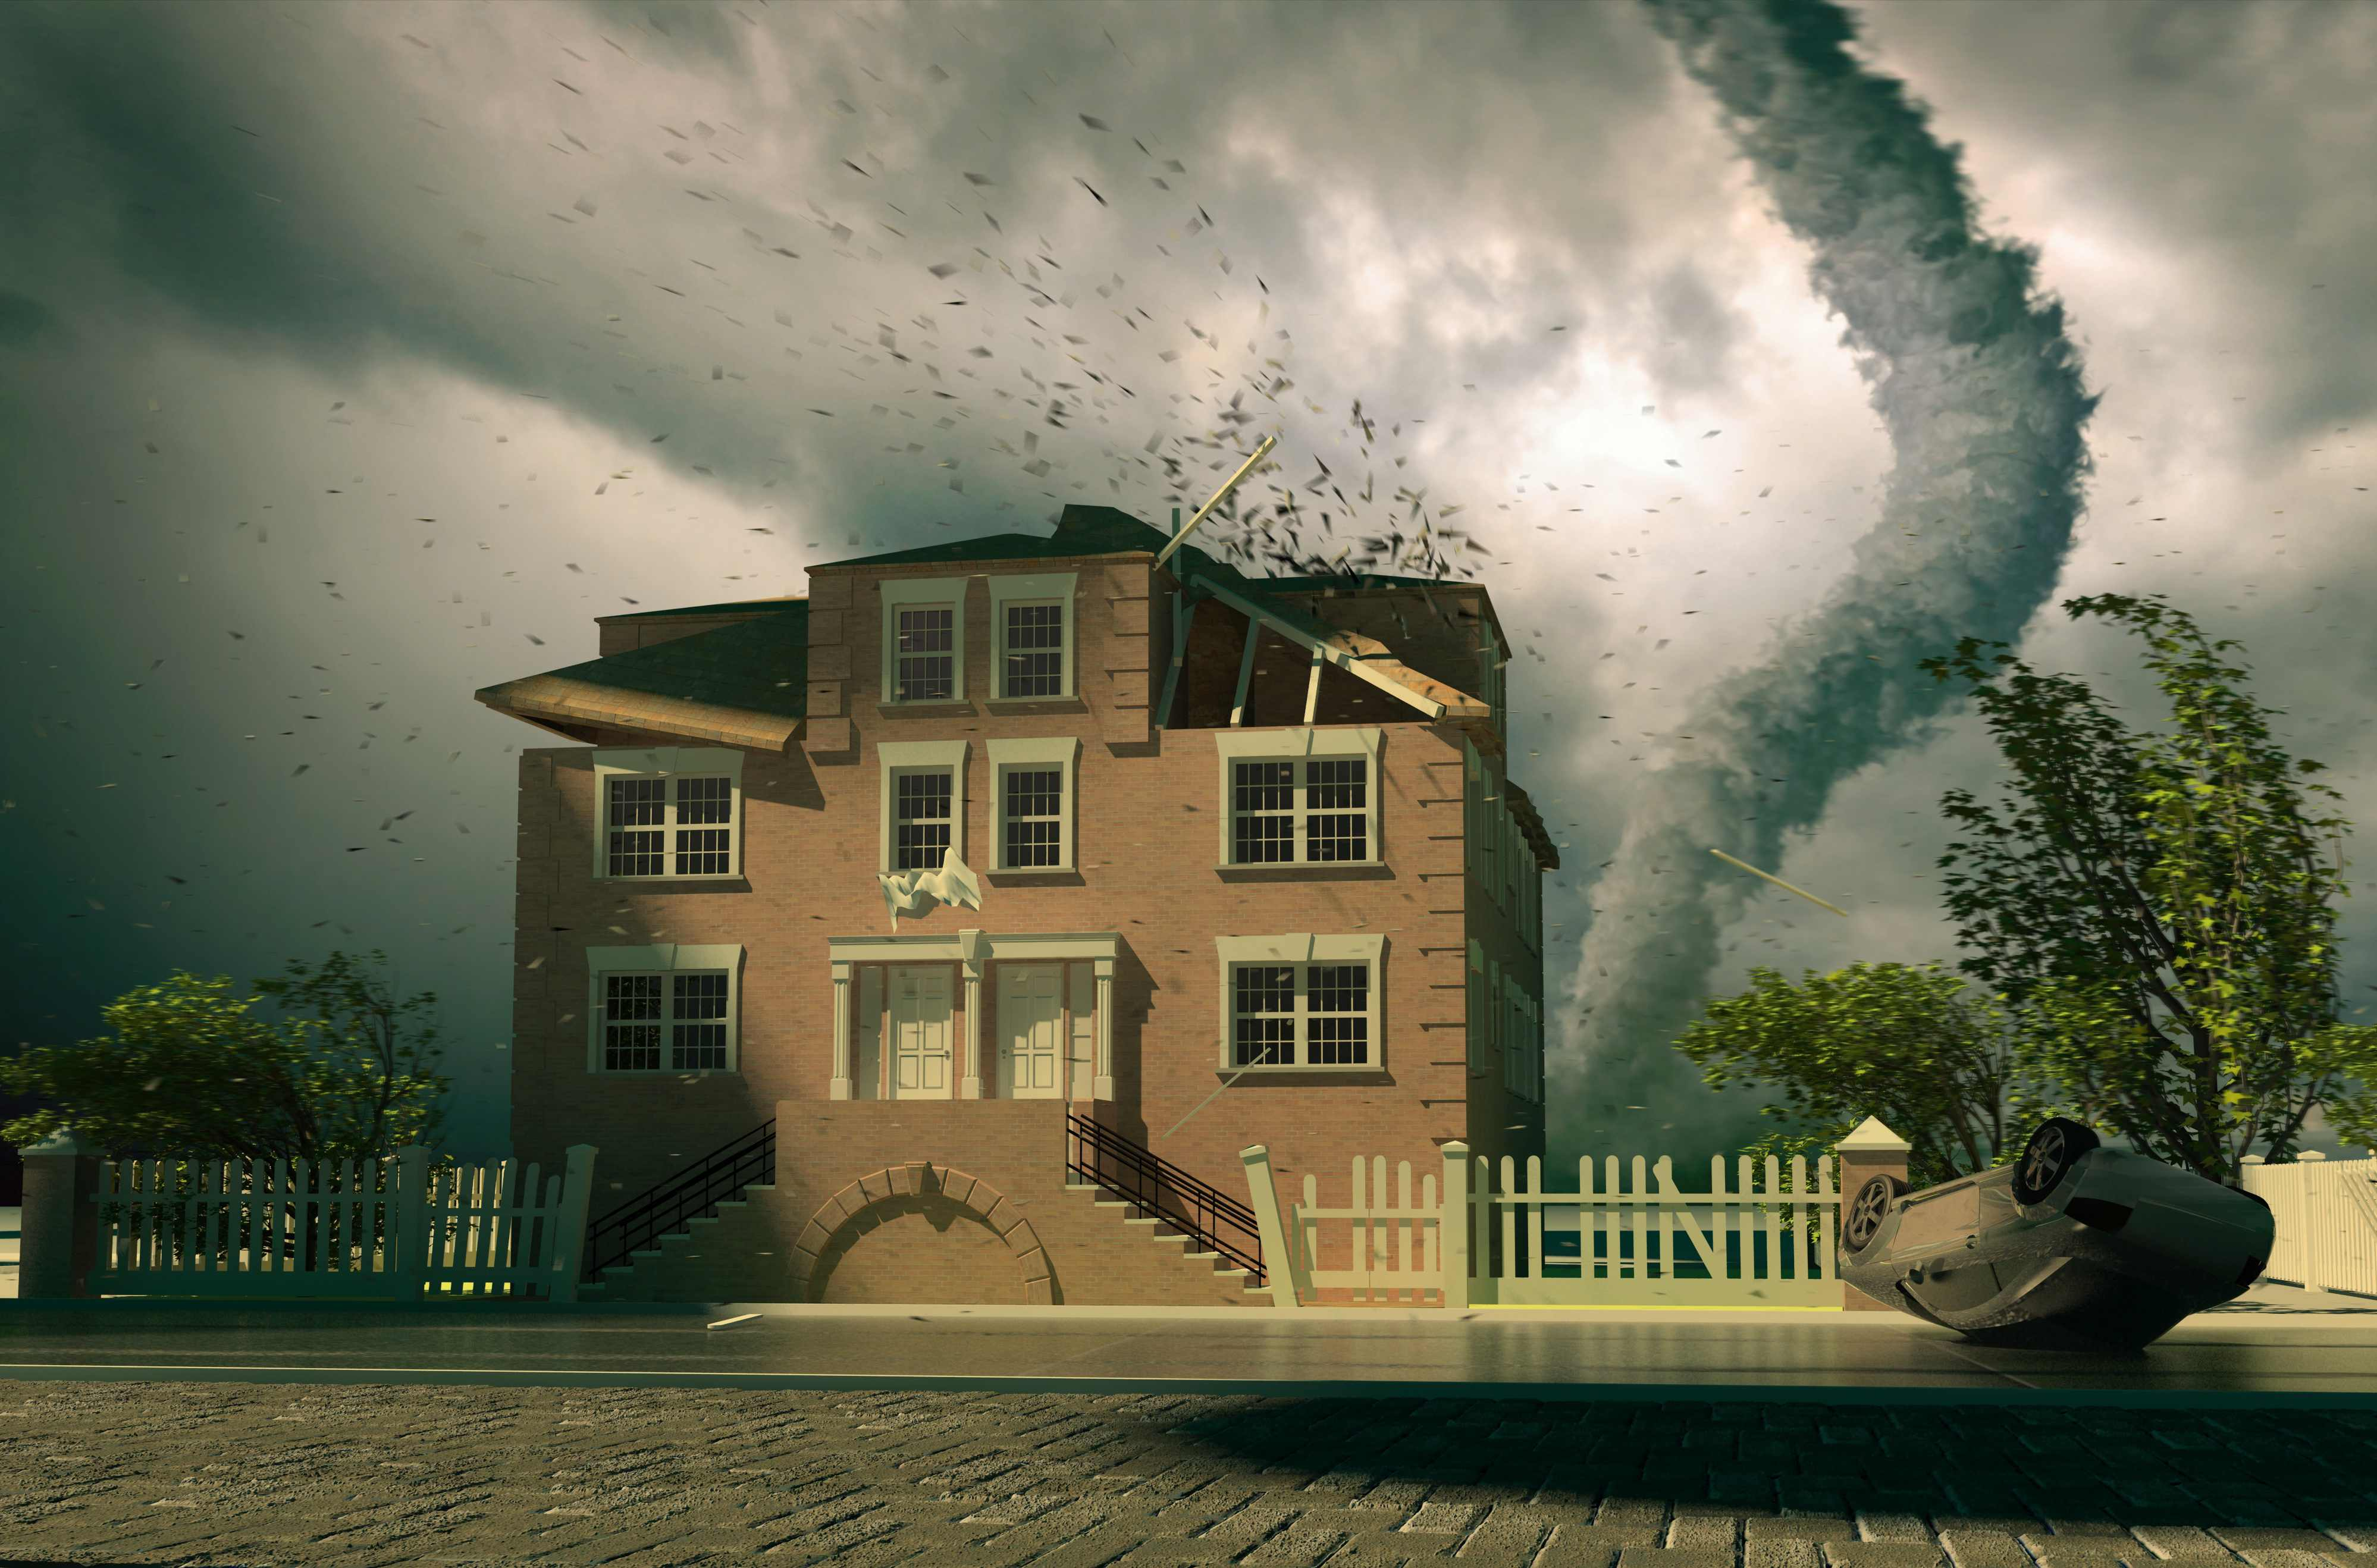 David Krieger's Clouded Titles Creates Storm Clouds - MFI ...